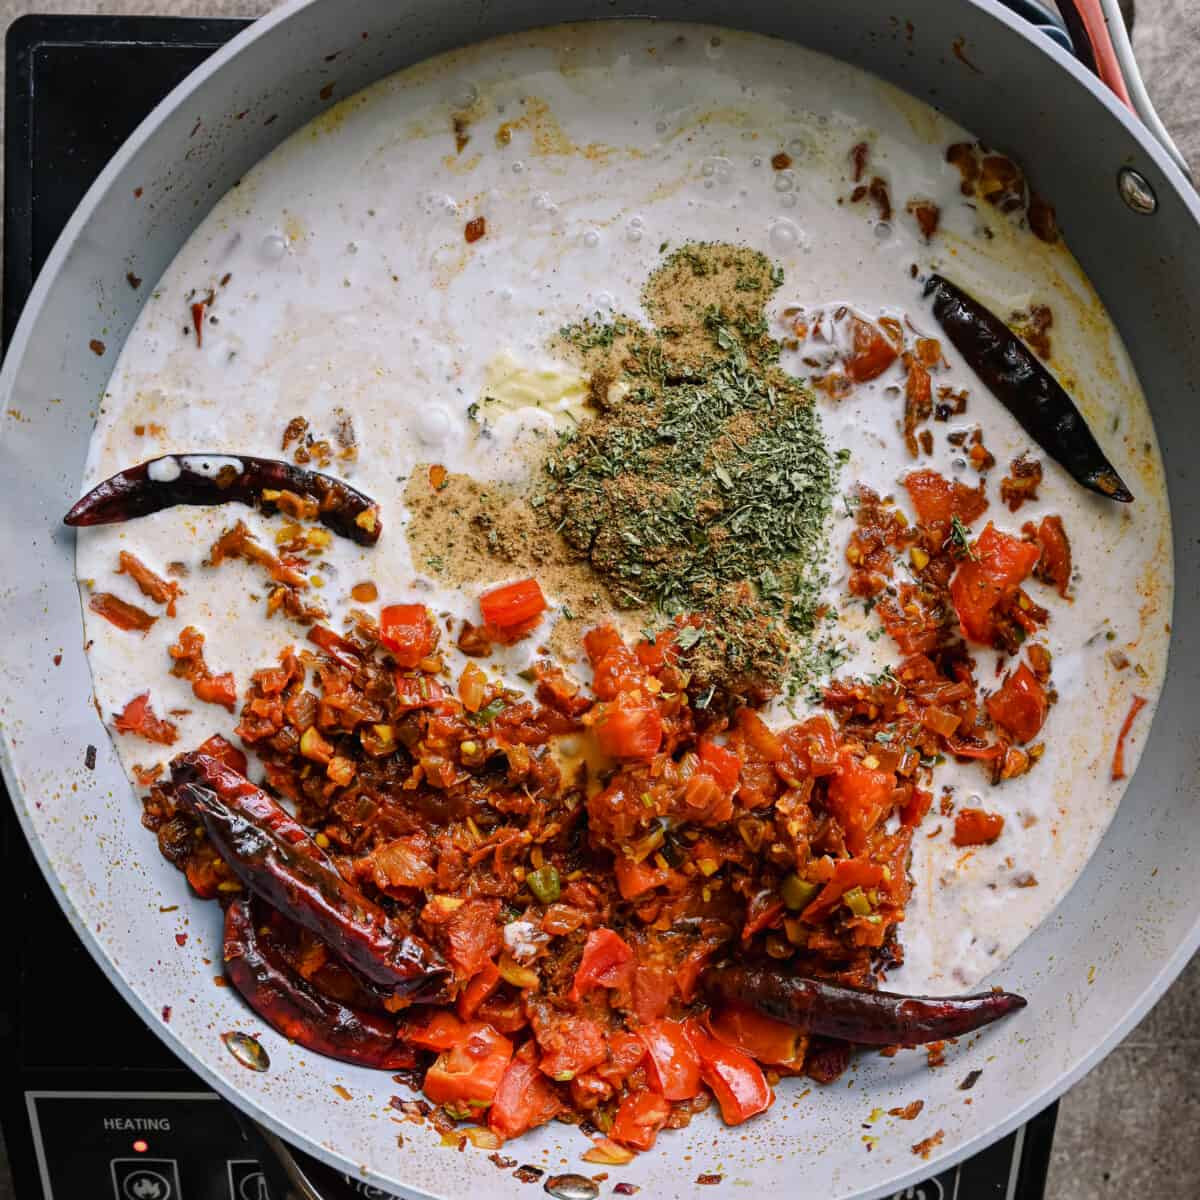 creamy Indian masala gravy in a saucepan with spices